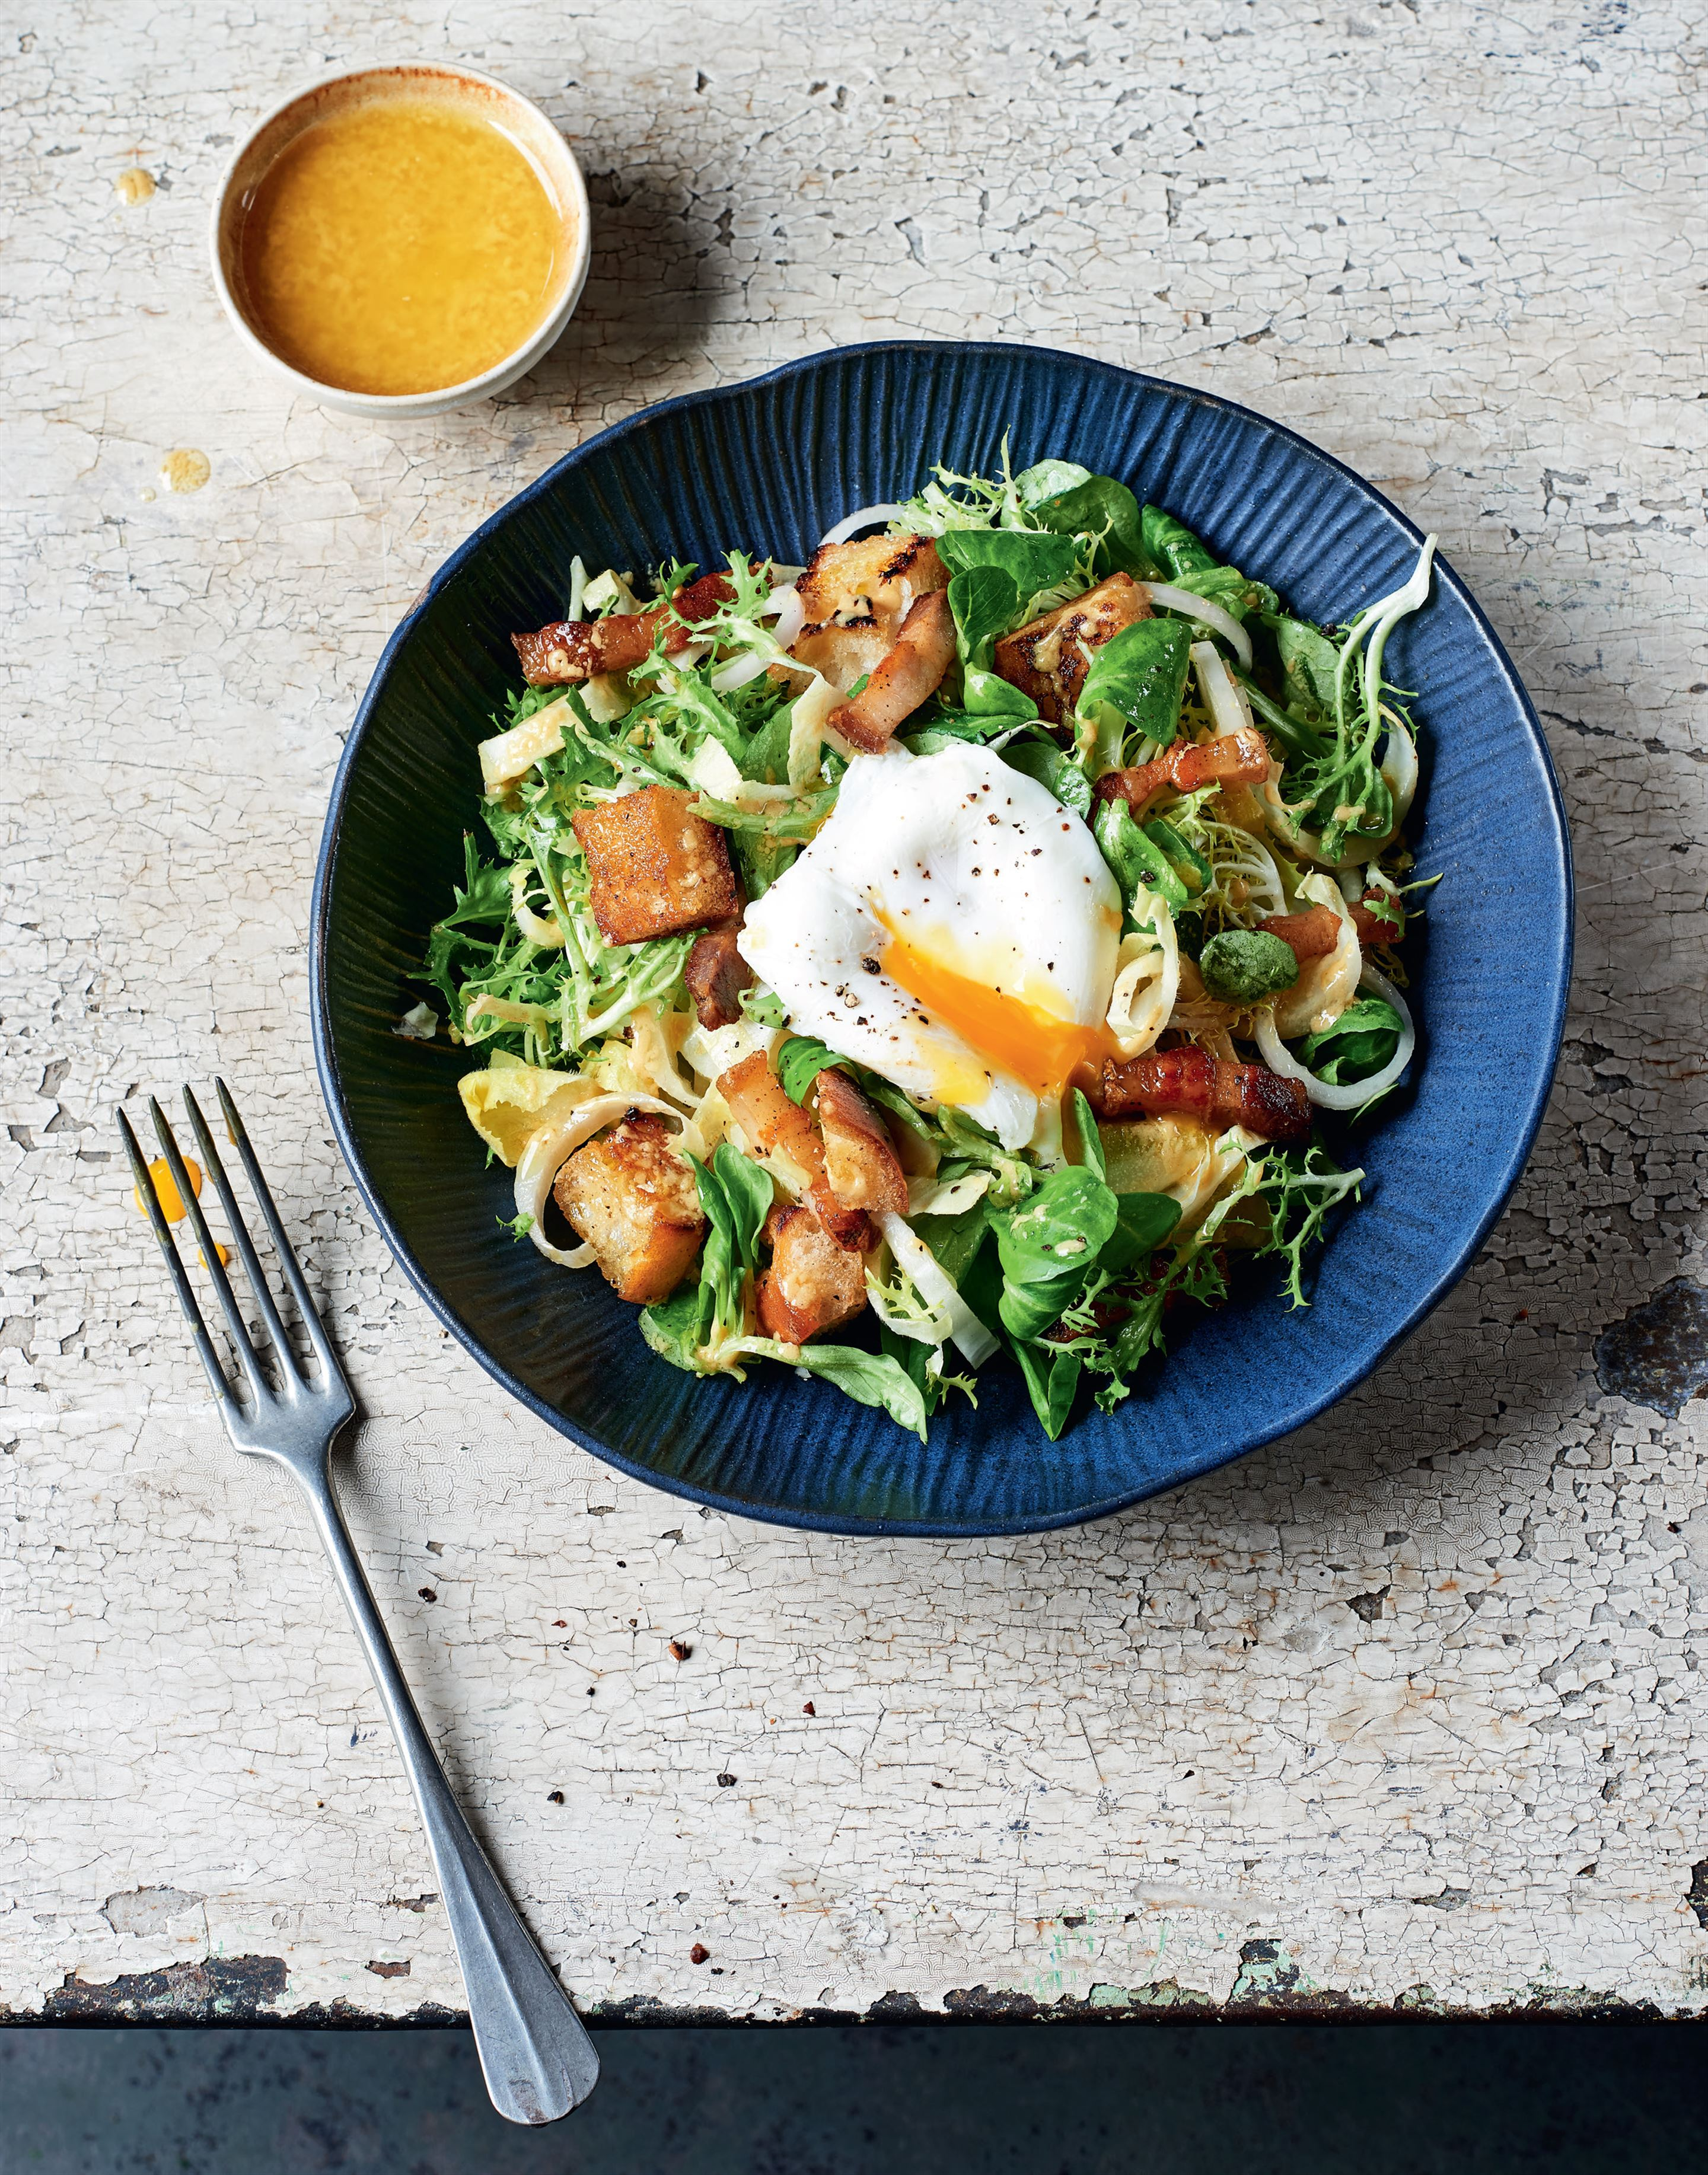 Lyonnaise egg & bacon salad